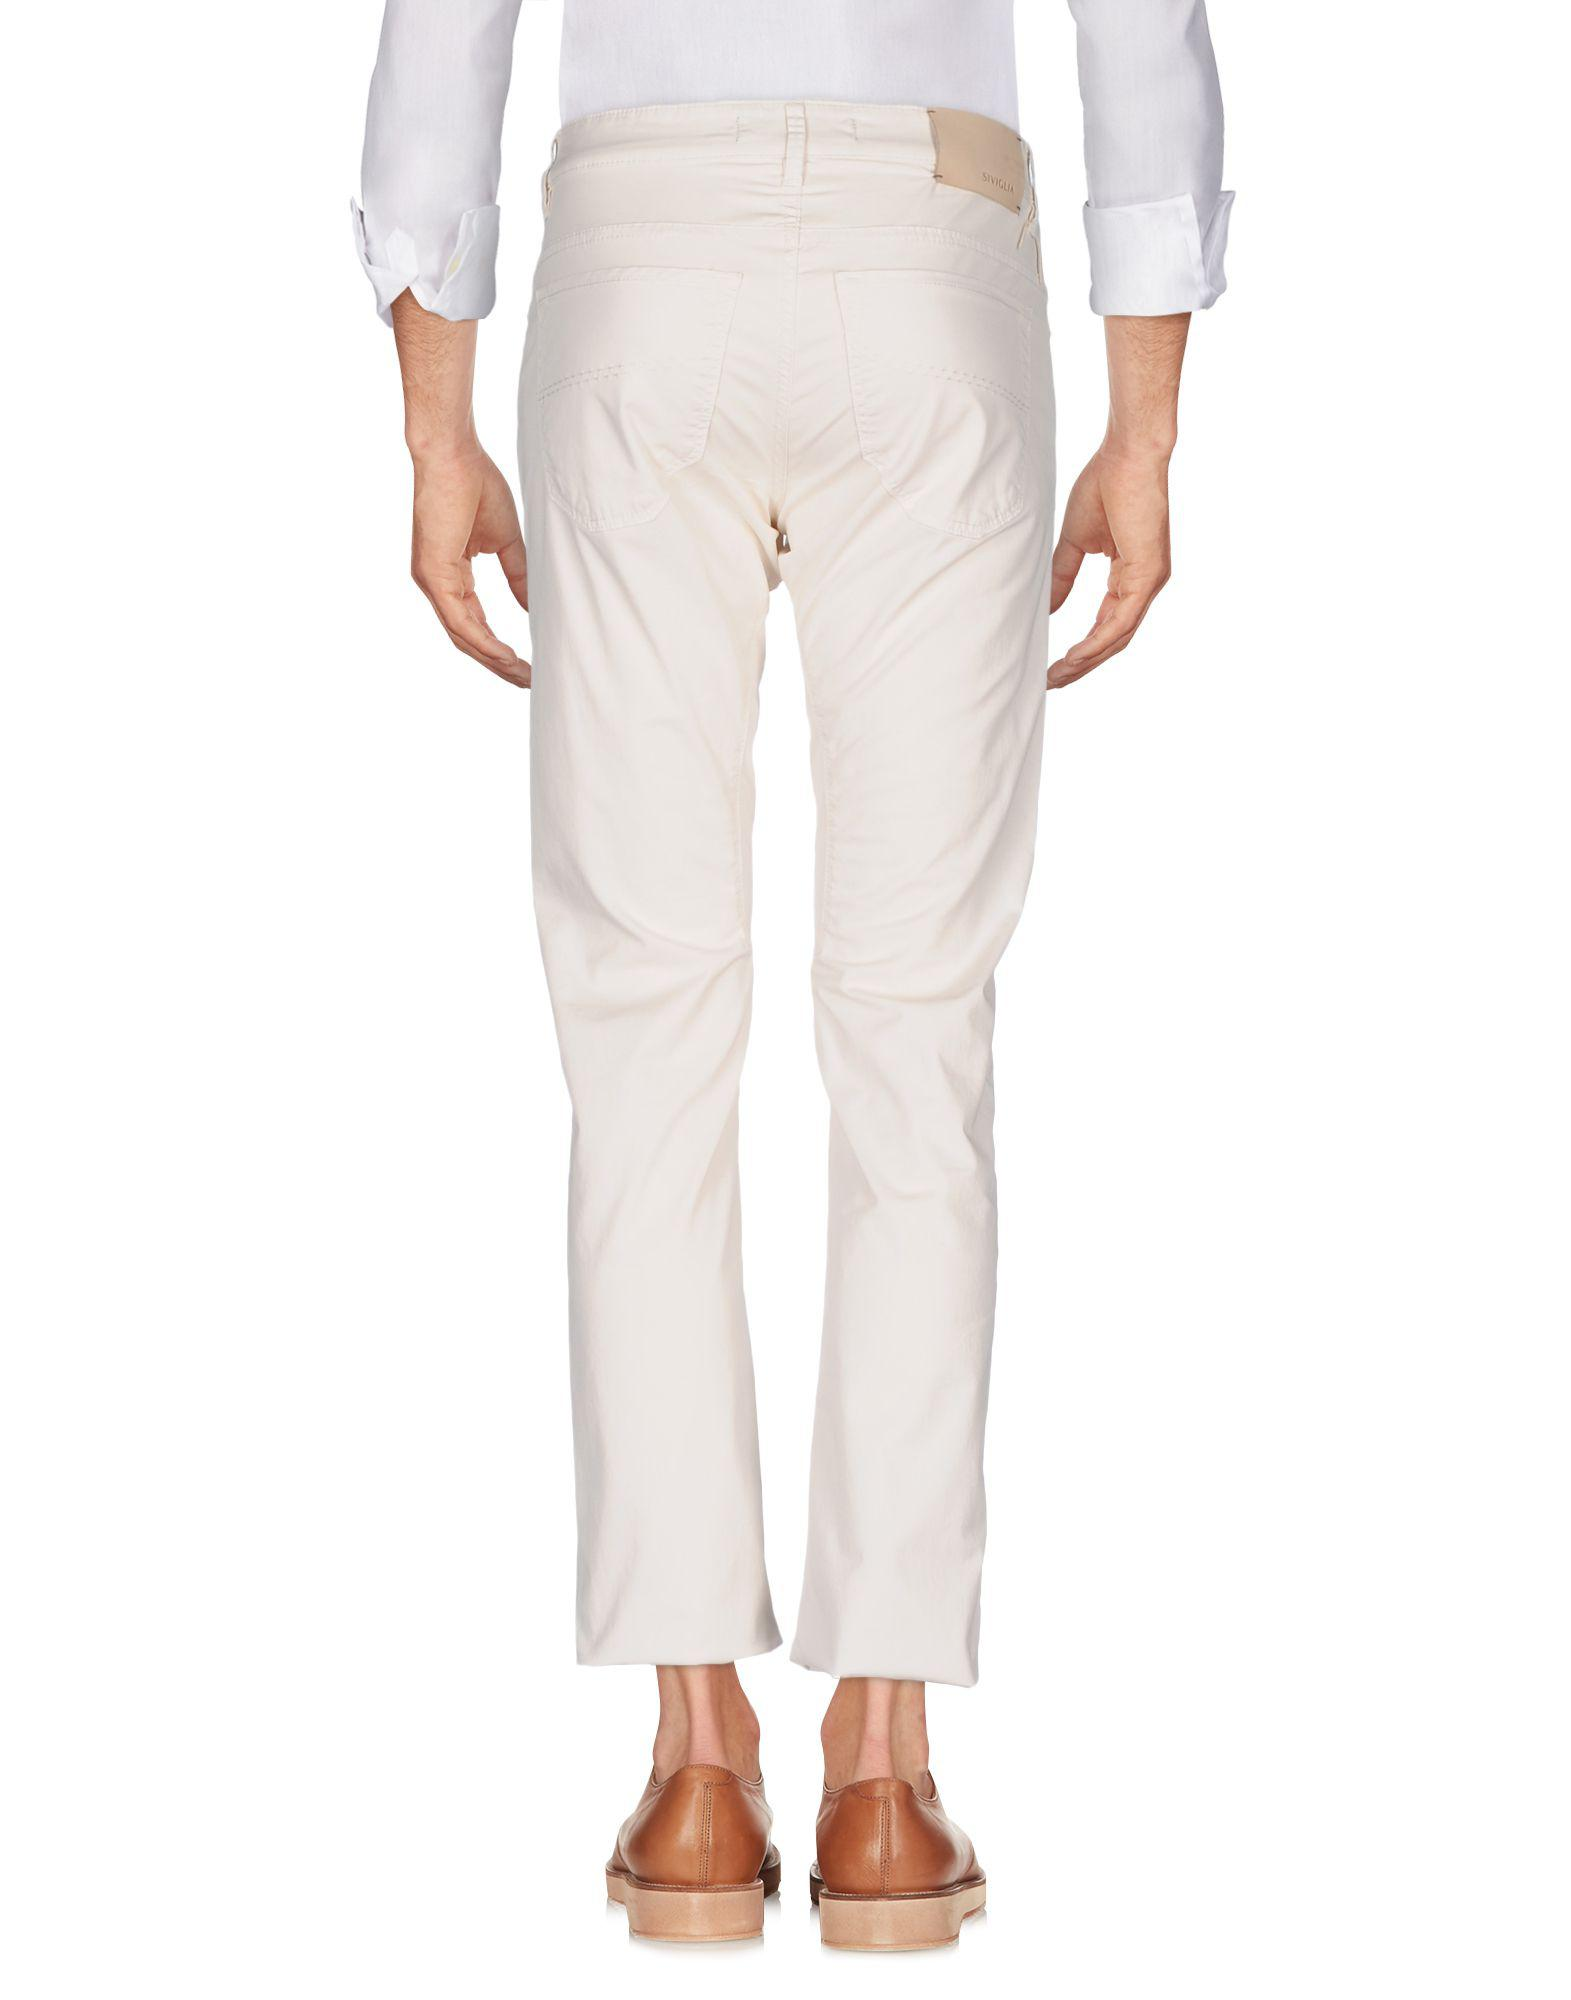 Siviglia Cotton Casual Pants in Ivory (White) for Men